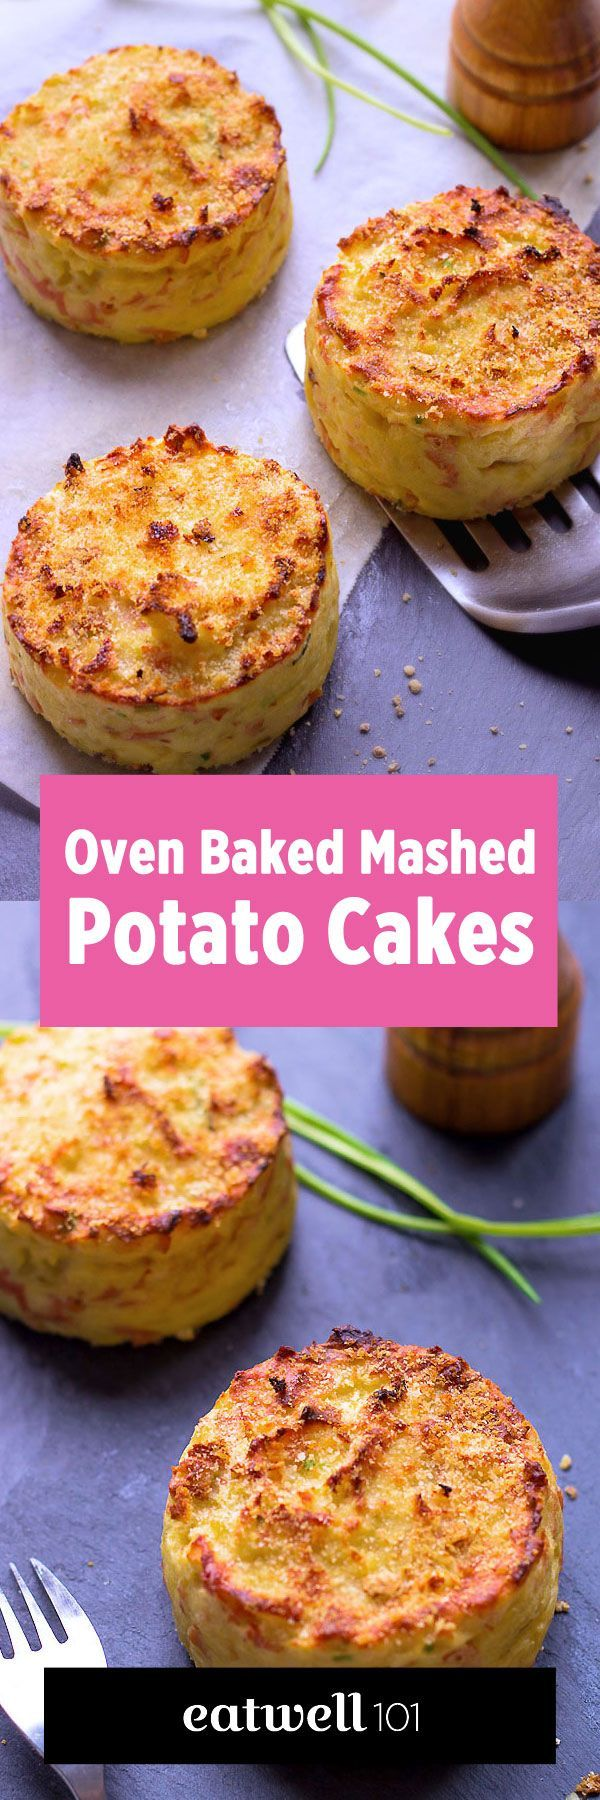 Healthier than pan fried potato patties, thesebaked mashedpotato cakes are cookedin oven for a result that is crisp in the outside and melting in the inside. This easy side dishis ideal to acco… #GrilledMeat